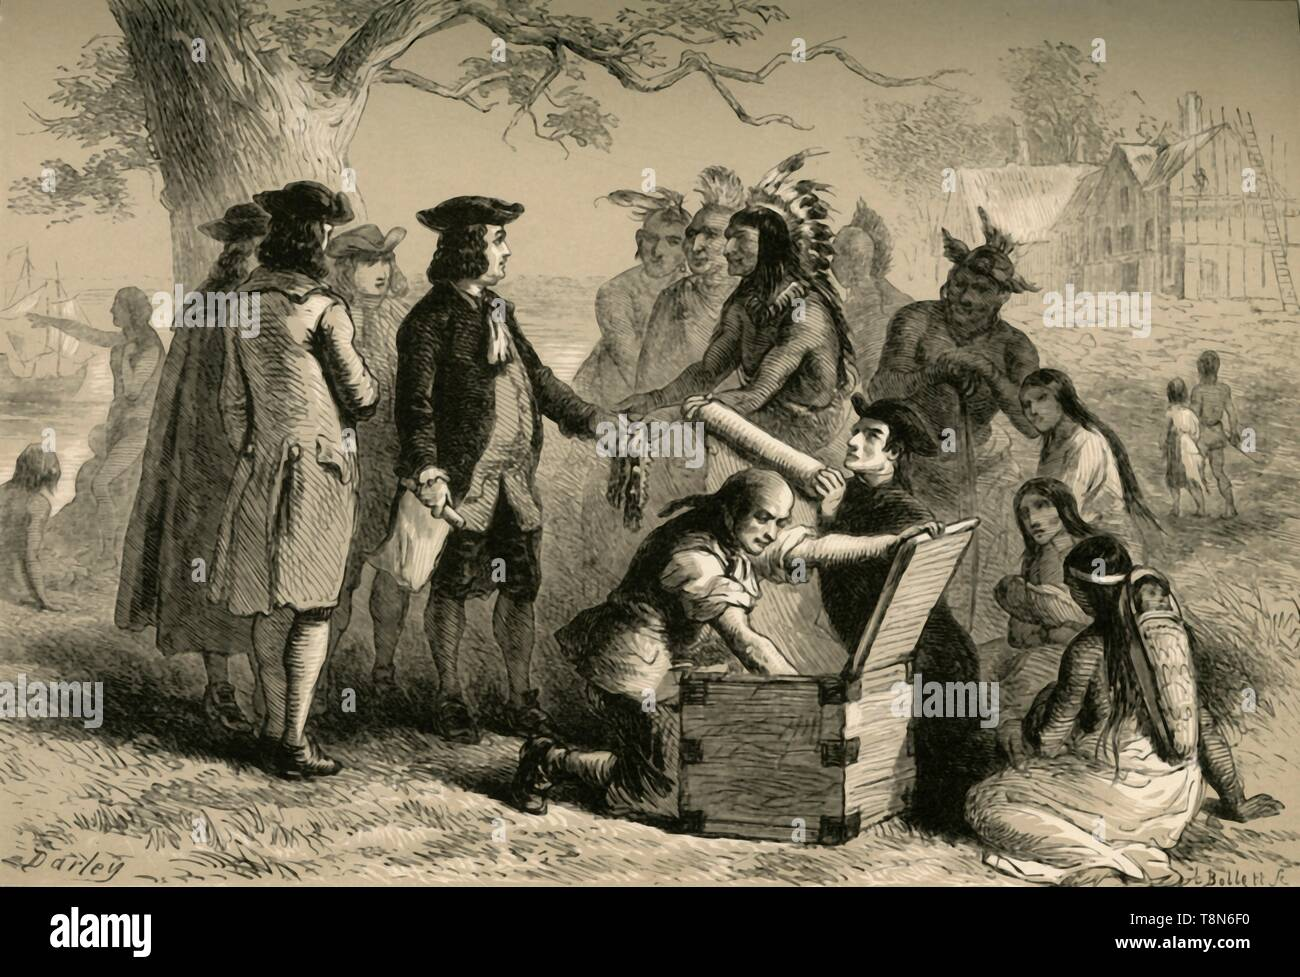 """'Penn's Treaty with the Indians', (1877). English Quaker colonist William Penn (1644-1718) made treaties with Native Americans in what is now the United States. The city of Philadelphia was planned and developed under his direction. From """"Our Country: a Household History for All Readers, from the Discovery of America to the Present Time"""", Volume 1, by Benson J. Lossing. [Johnson & Miles, New York, 1877] - Stock Image"""